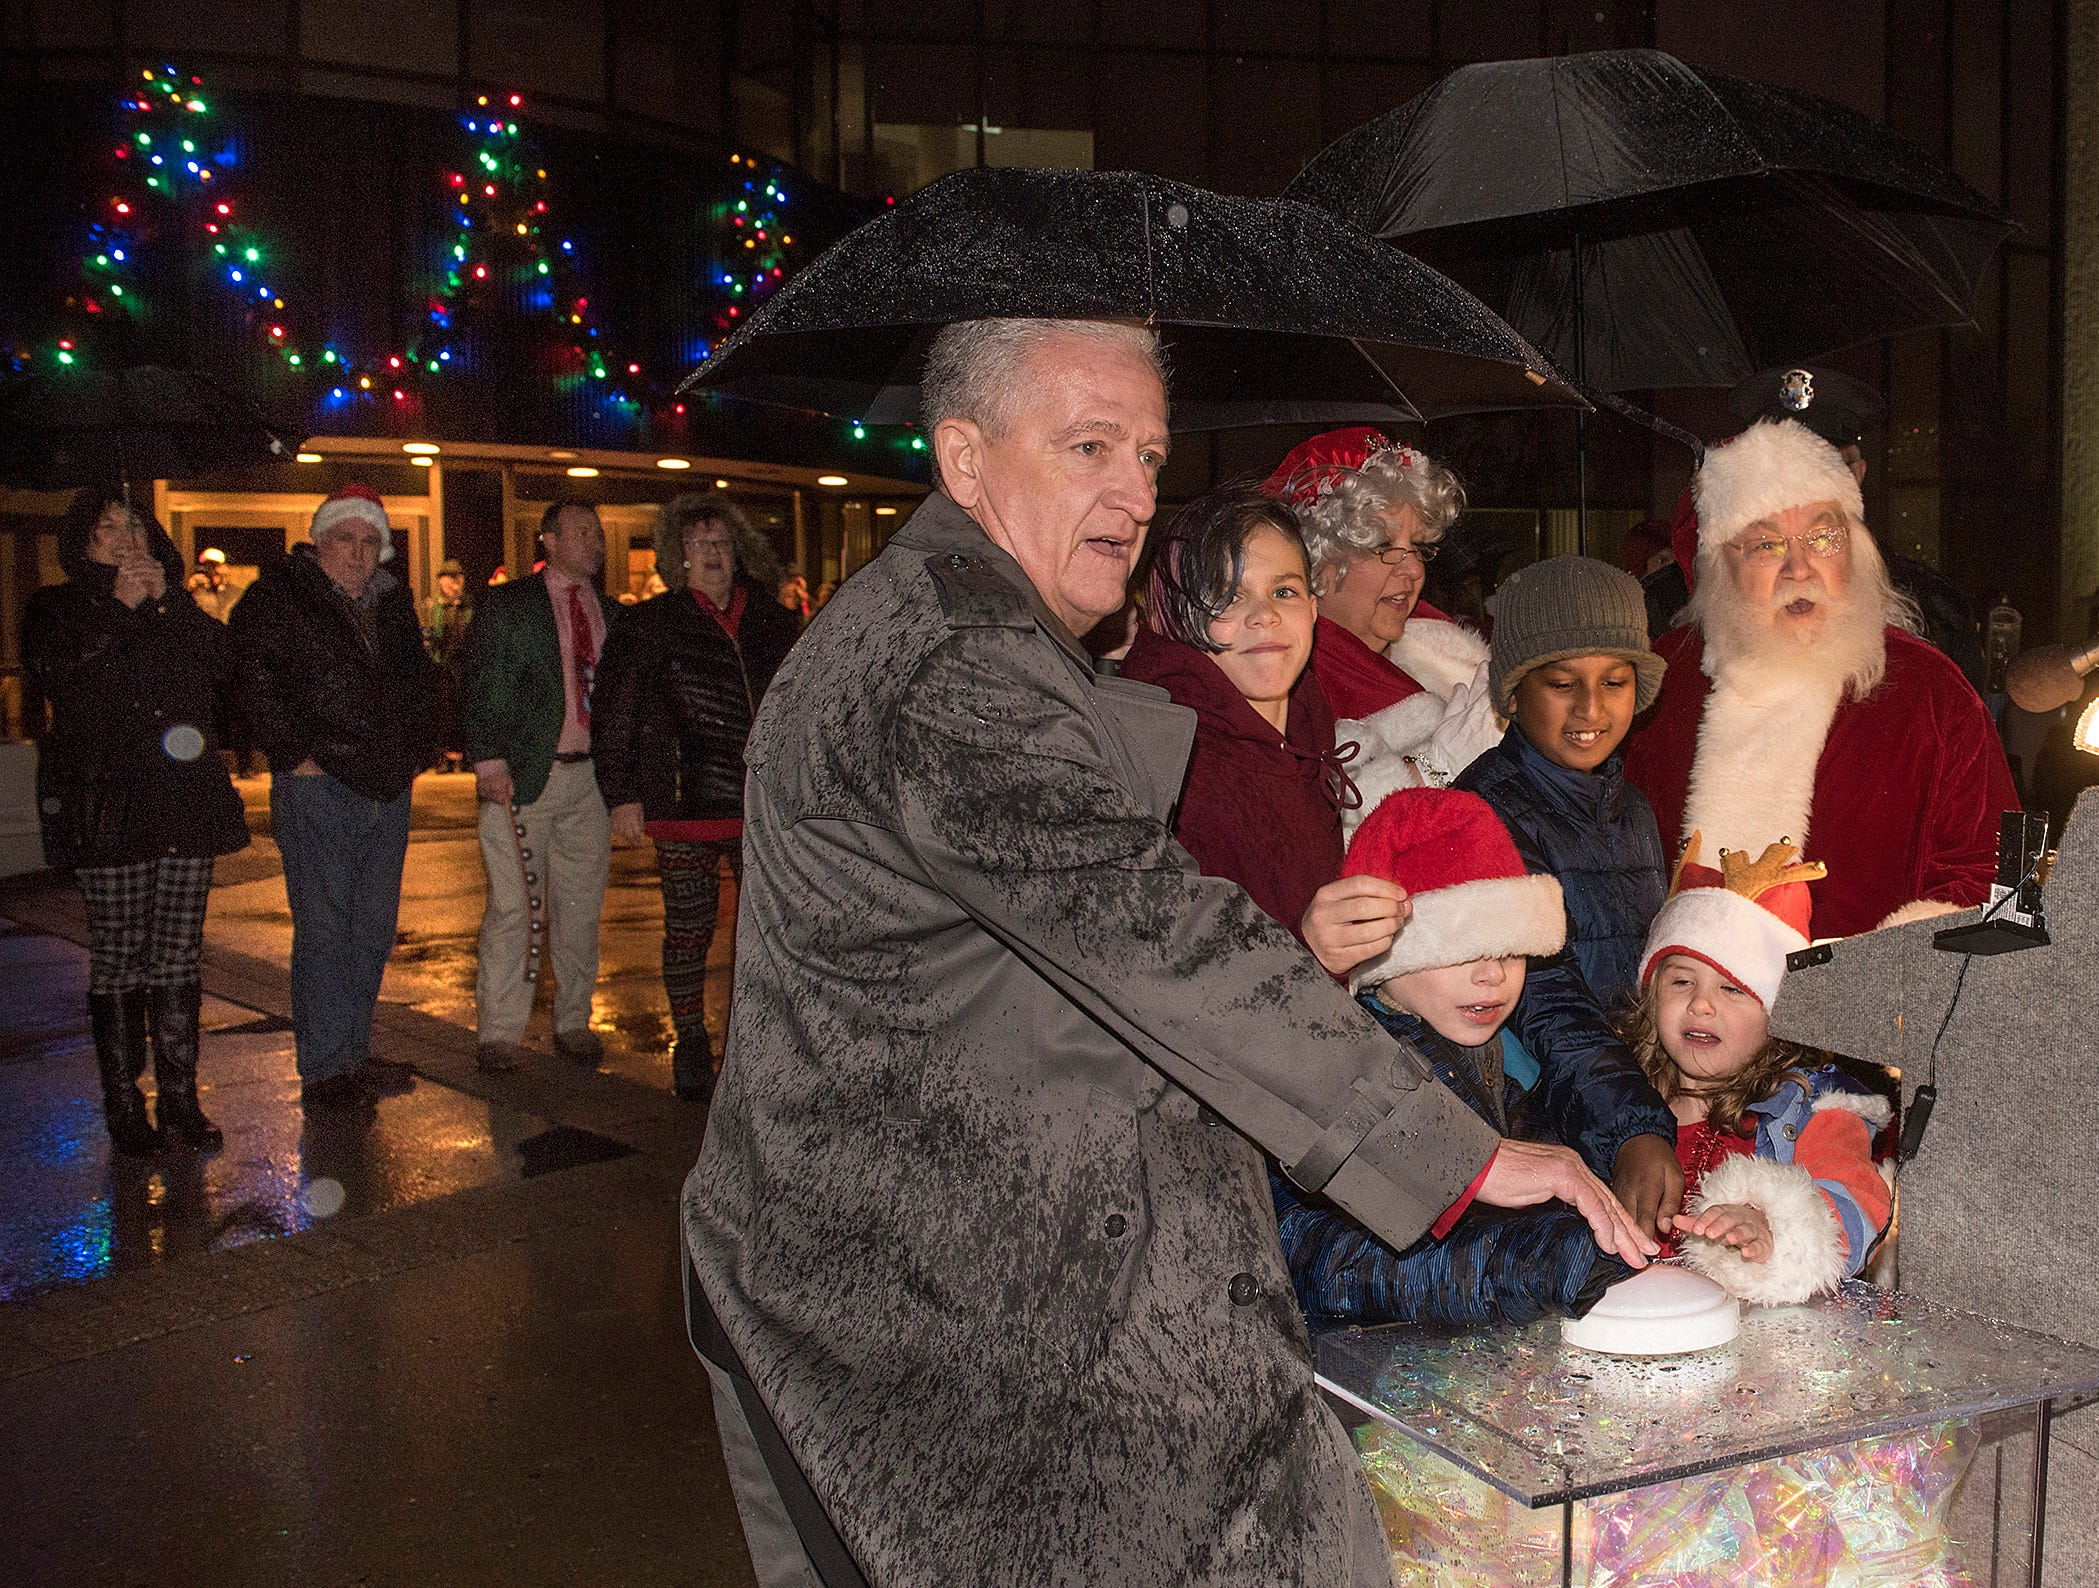 """Mayor Dennis Wright, Santa and Mrs. Claus light the holiday lights with help from winners of the """"December is Special To Me"""" contest, Steven Saylor, Michael Mastaw, Sriyansh Priyadarshi, and Evelyn Talbot."""